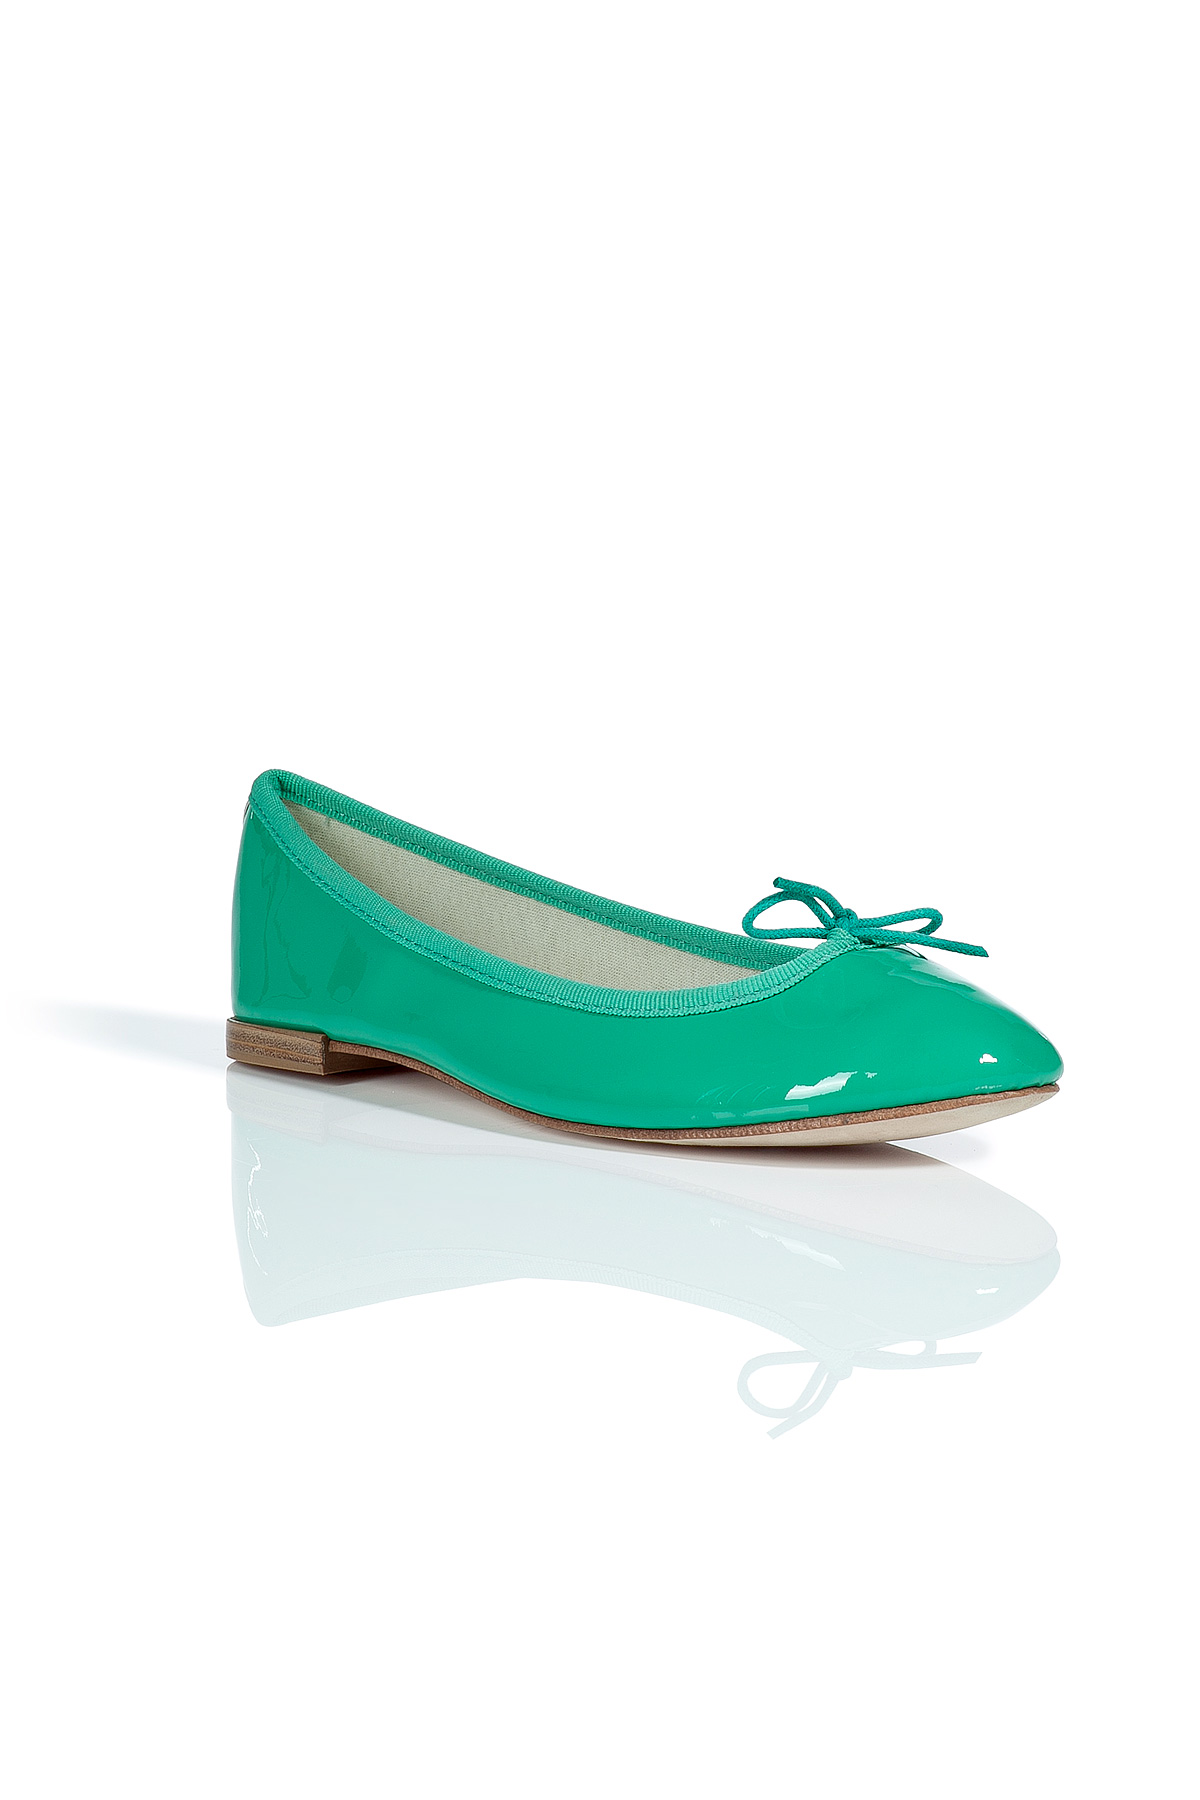 repetto patent leather bb ballet flats in green